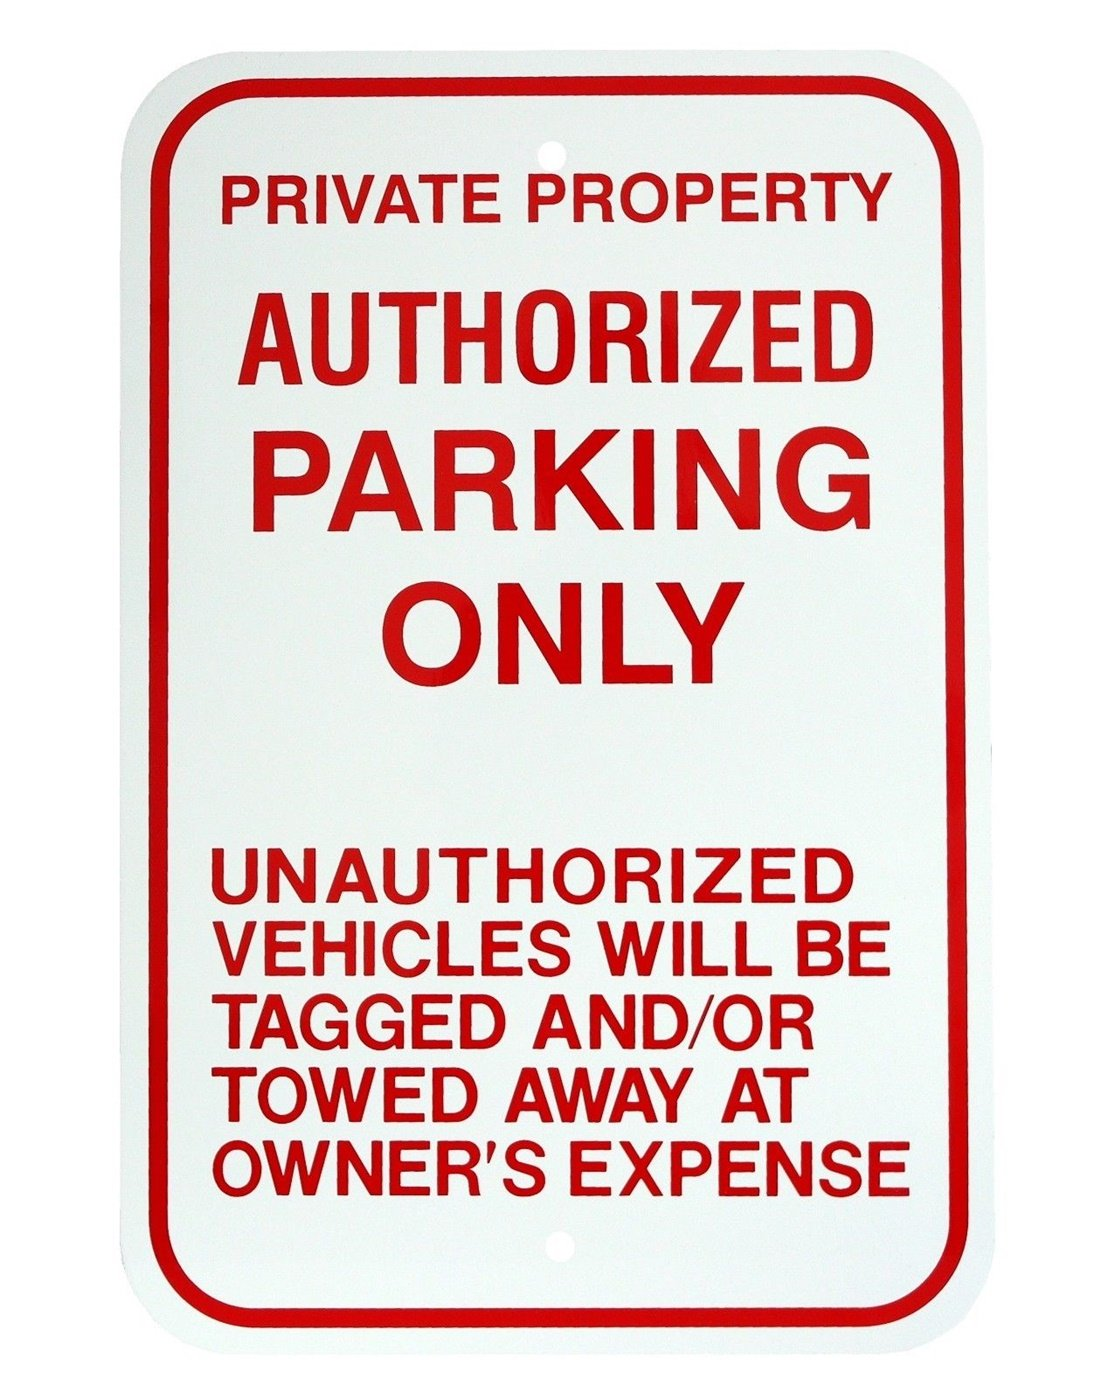 1-Pc Wonderful Popular Authorized Parking Only Sign Exterior Message Declare Vehicles Property Size 12'' x 18'' Aluminum Signs by GVGs Shop